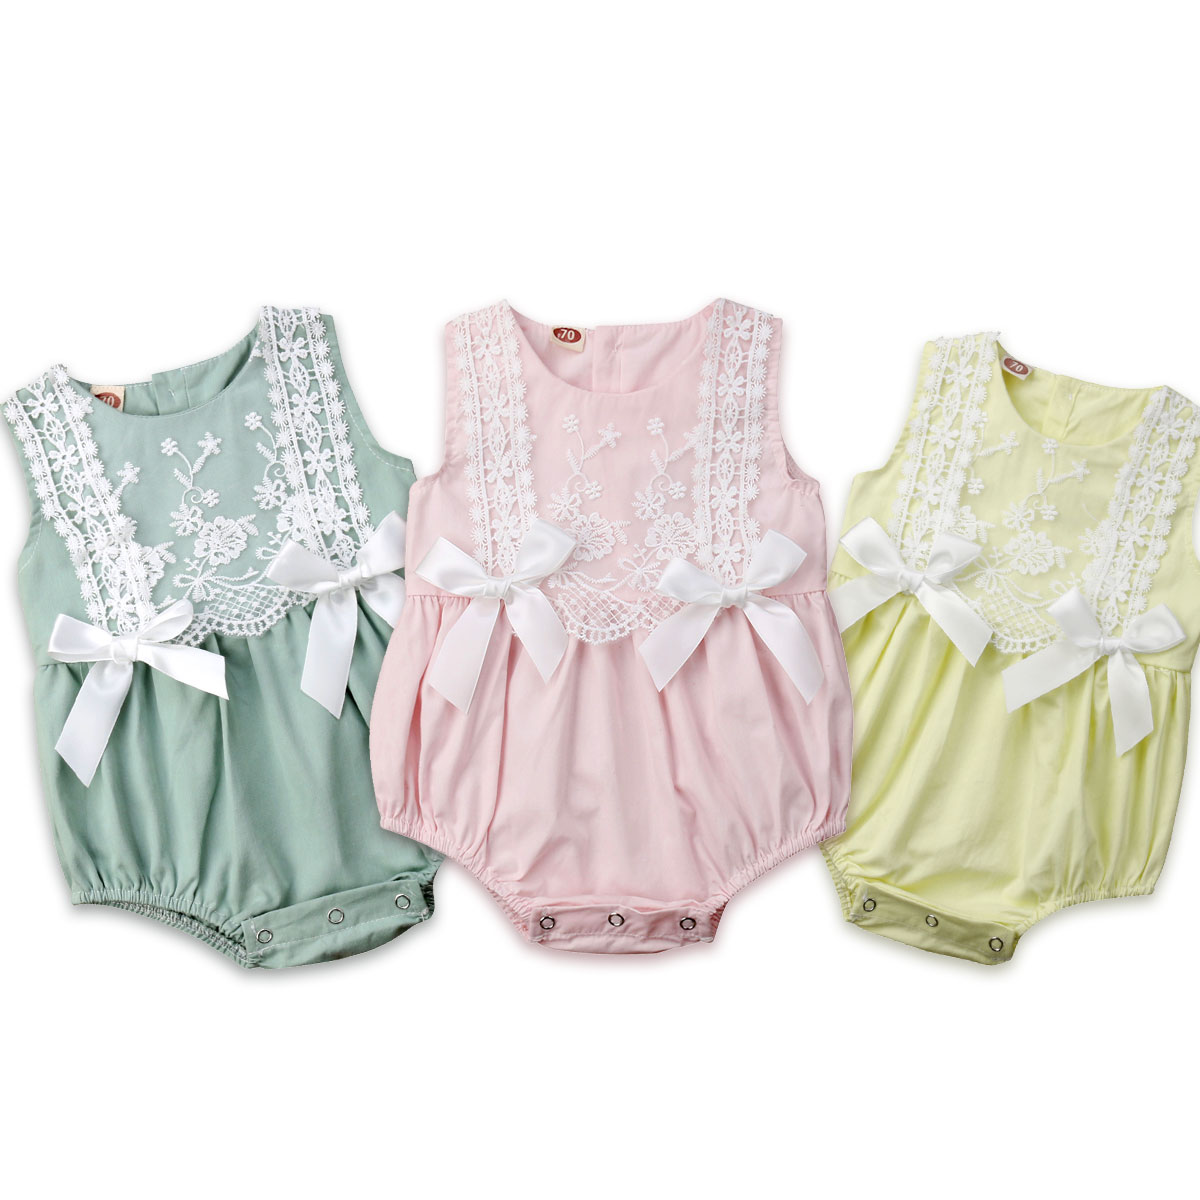 88e03776c074e top 10 largest romper lace list and get free shipping - fmn543mc